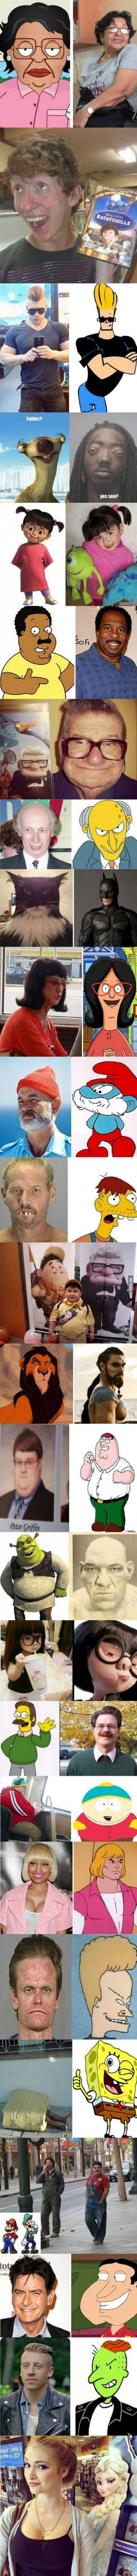 26 Cartoon Characters In Real Life